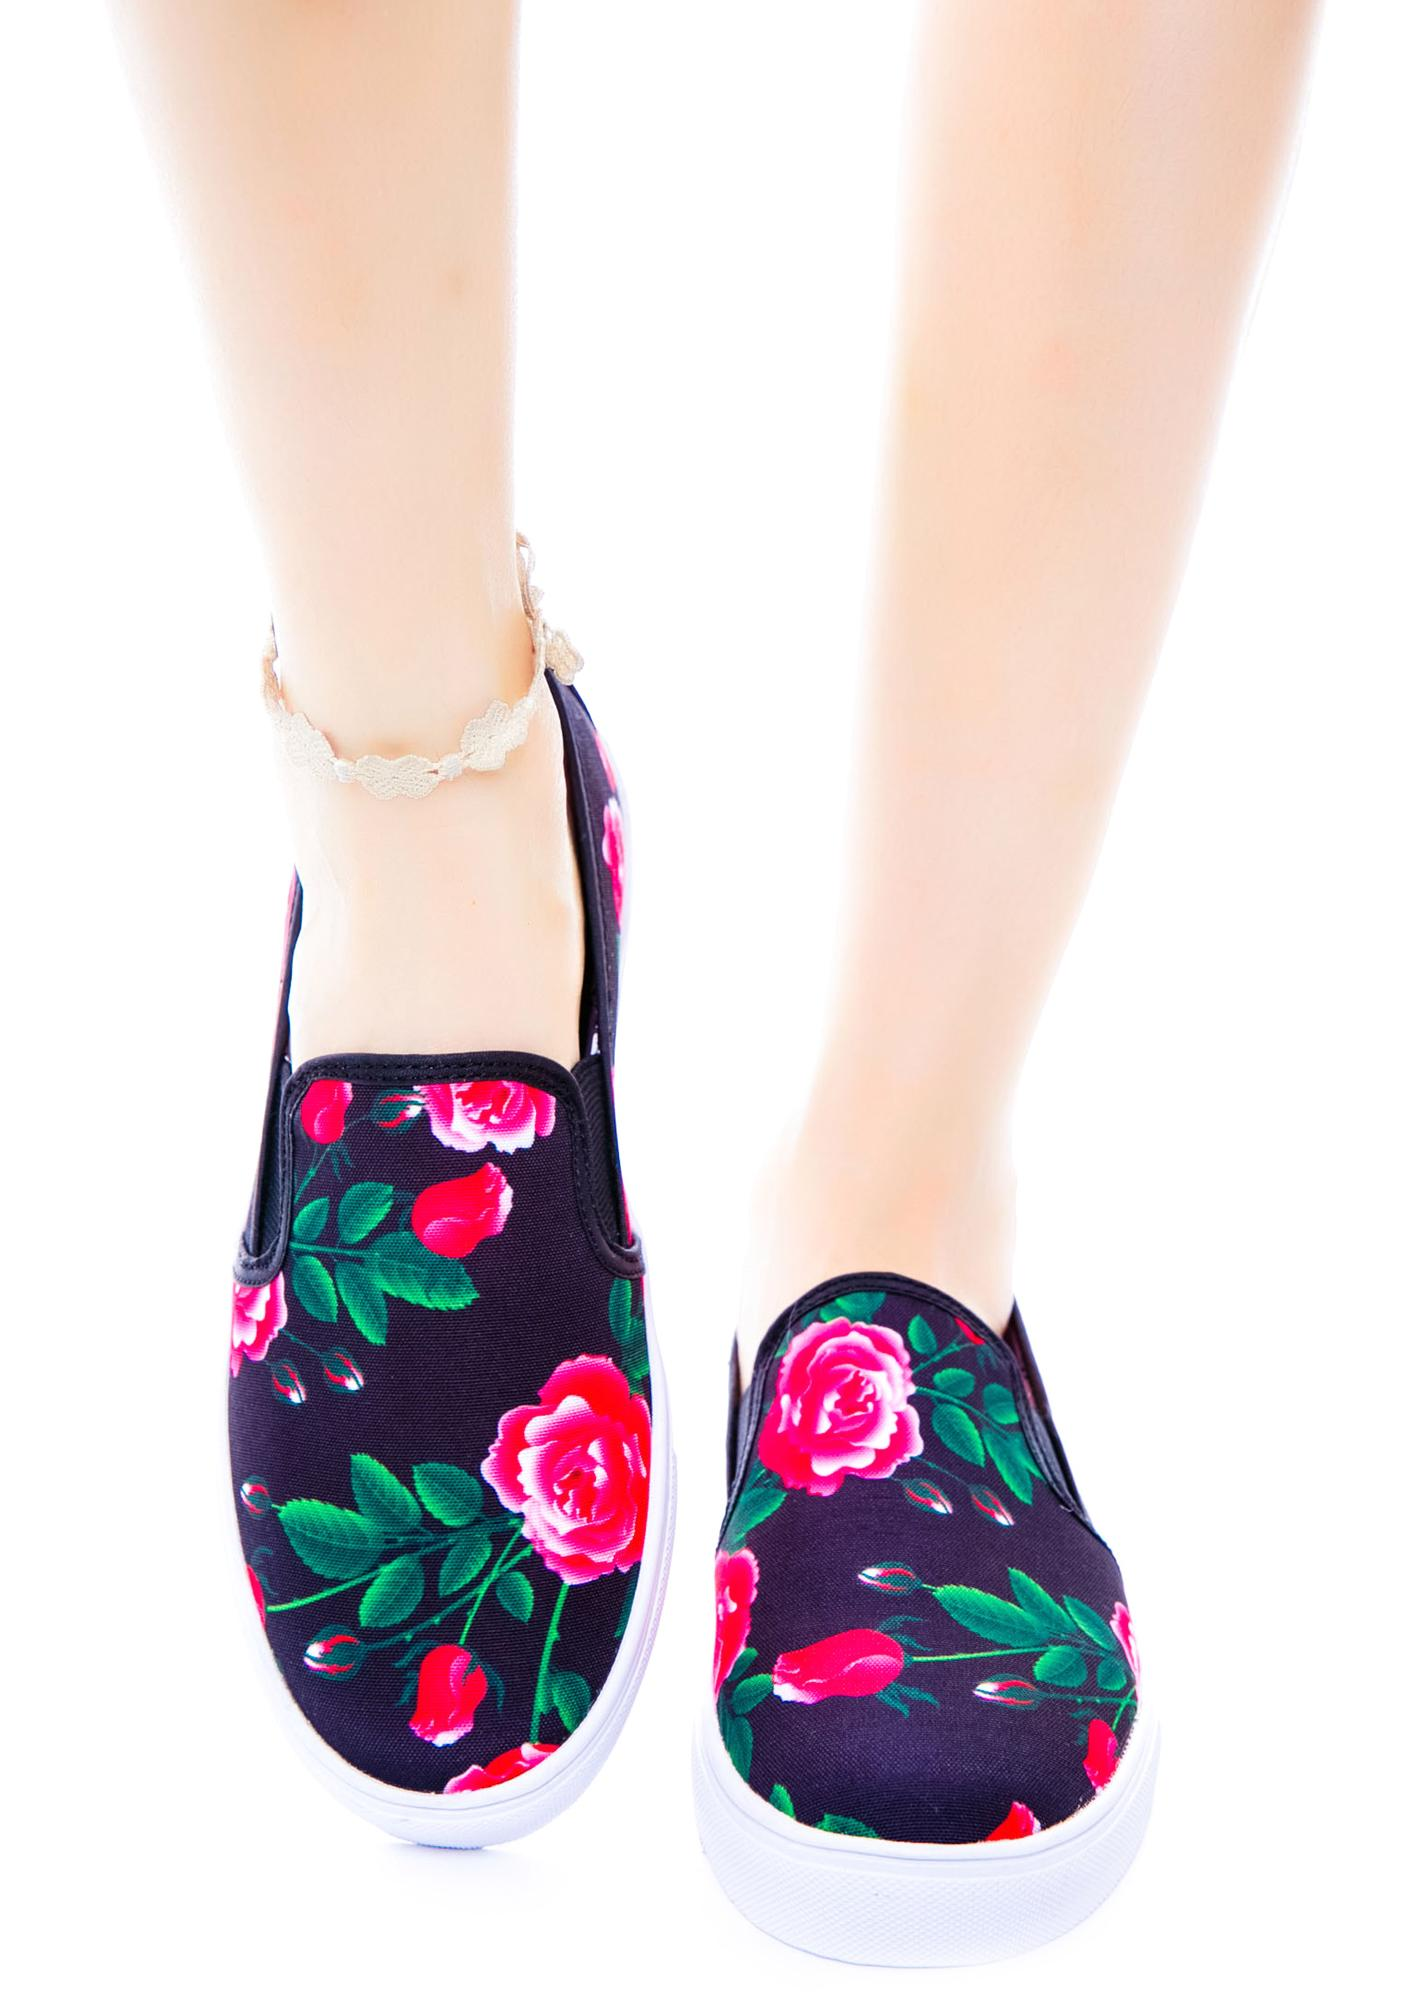 Y.R.U. Chill Floral Slip-On Sneaker